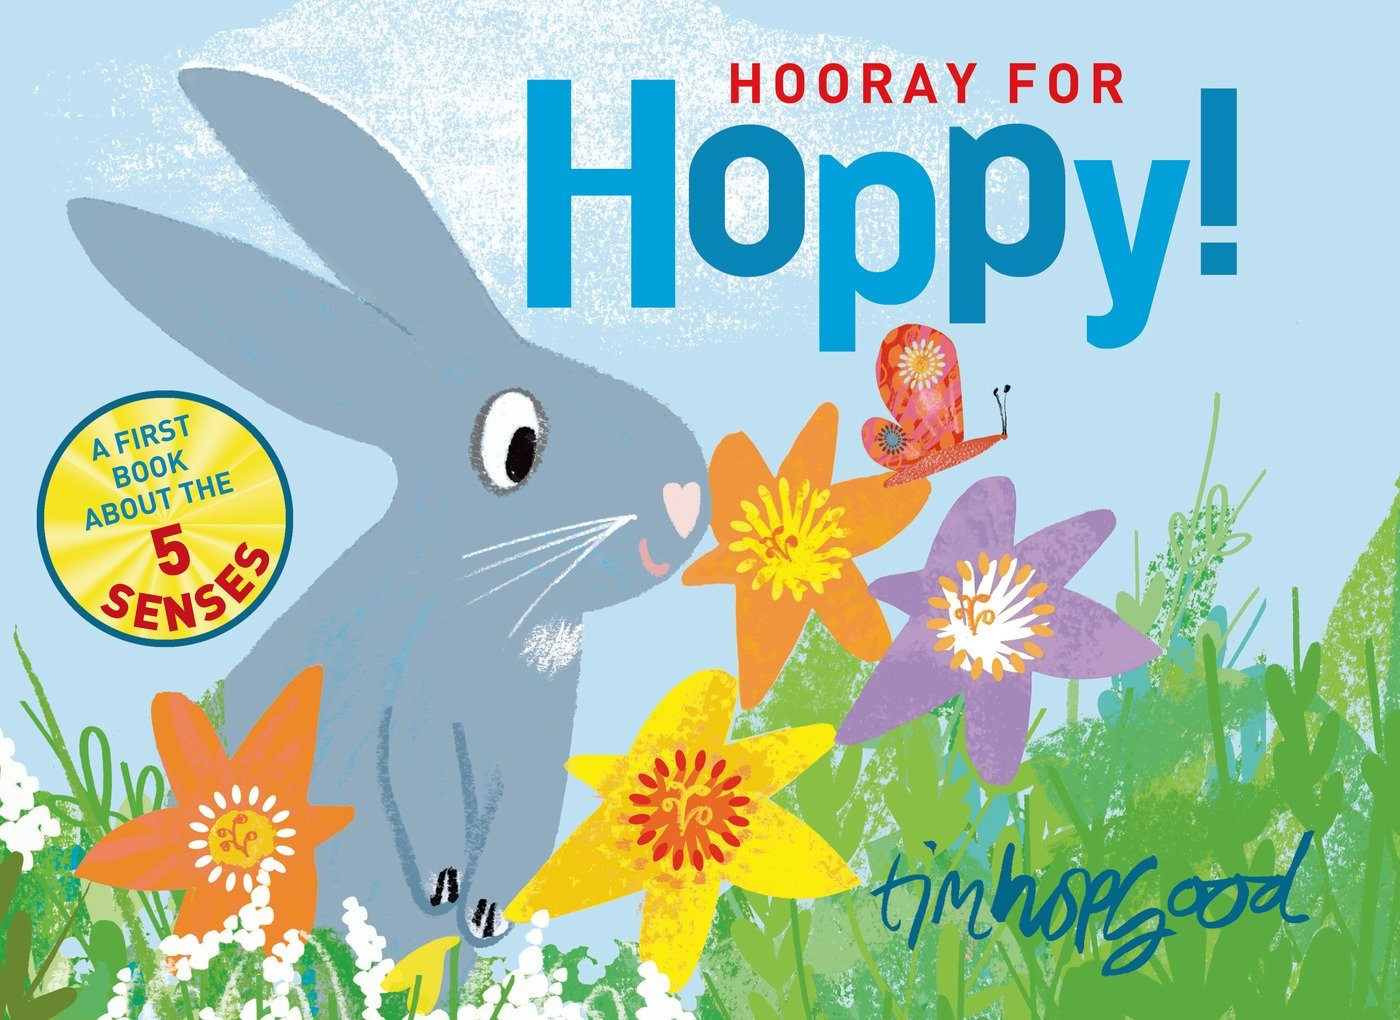 Hop good Hooray for Hoopy